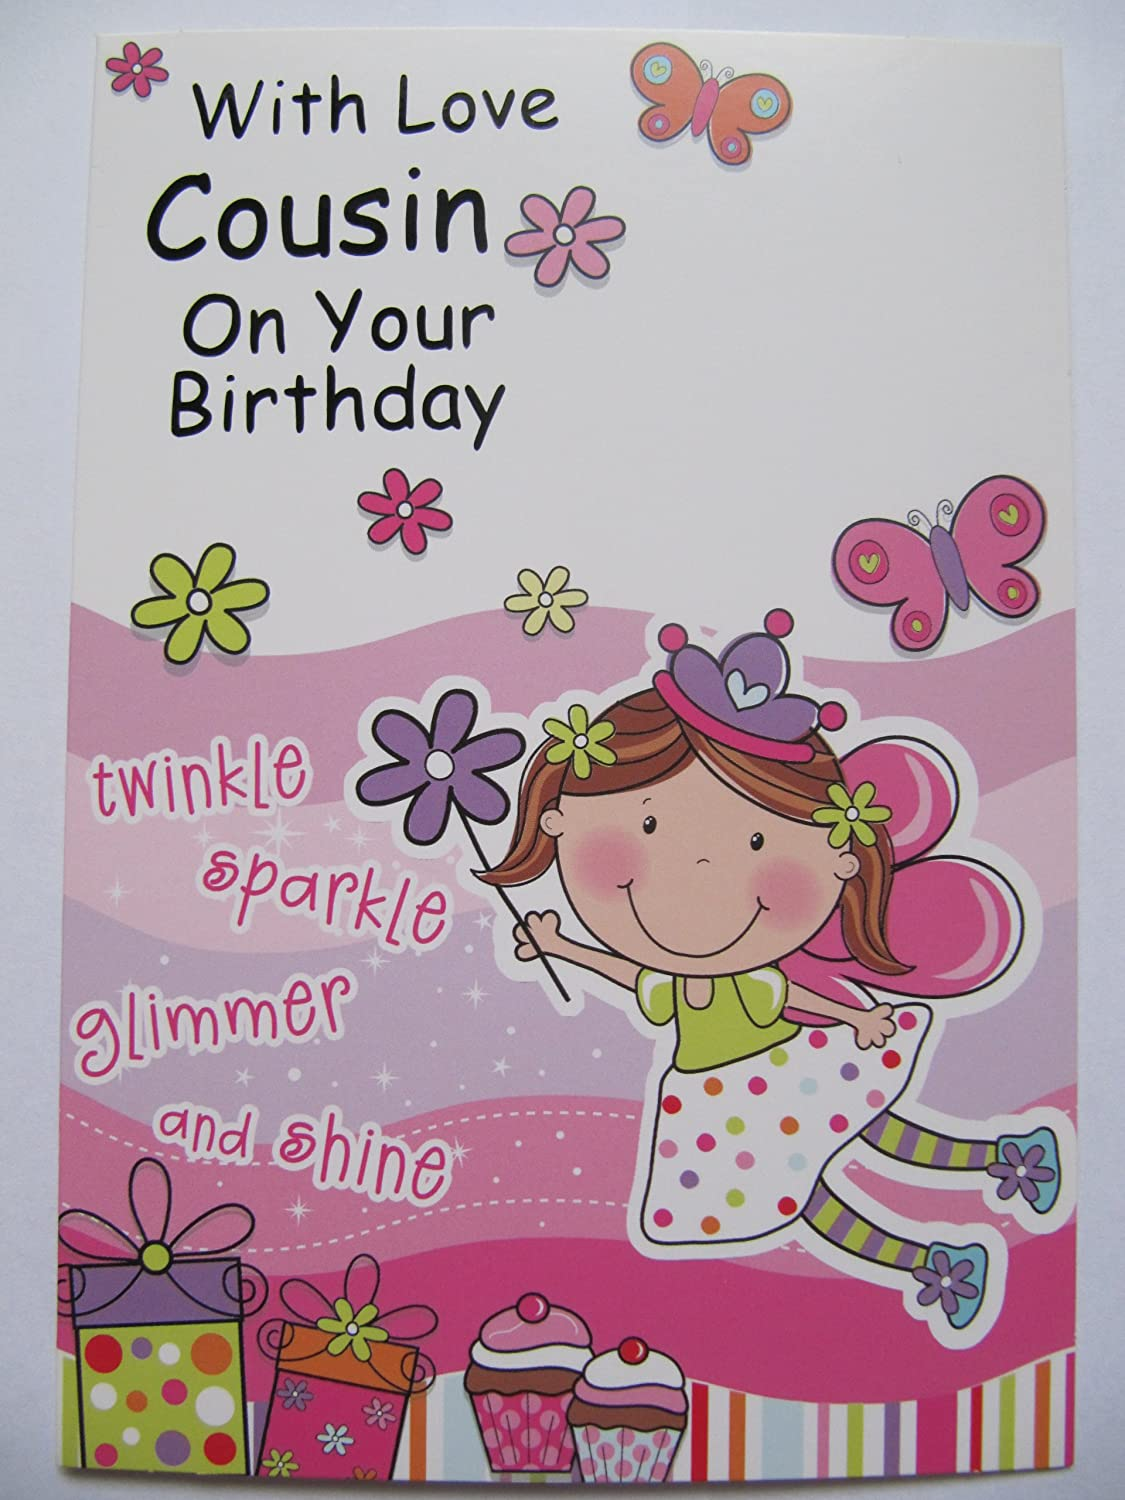 Birthday card for niece greeting valentine cards handmade princess fairy personalised birthday greeting card mum daughter 91qsoyqhcol b00hvcz58m birthday card for niece greeting birthday card for niece greeting kristyandbryce Choice Image